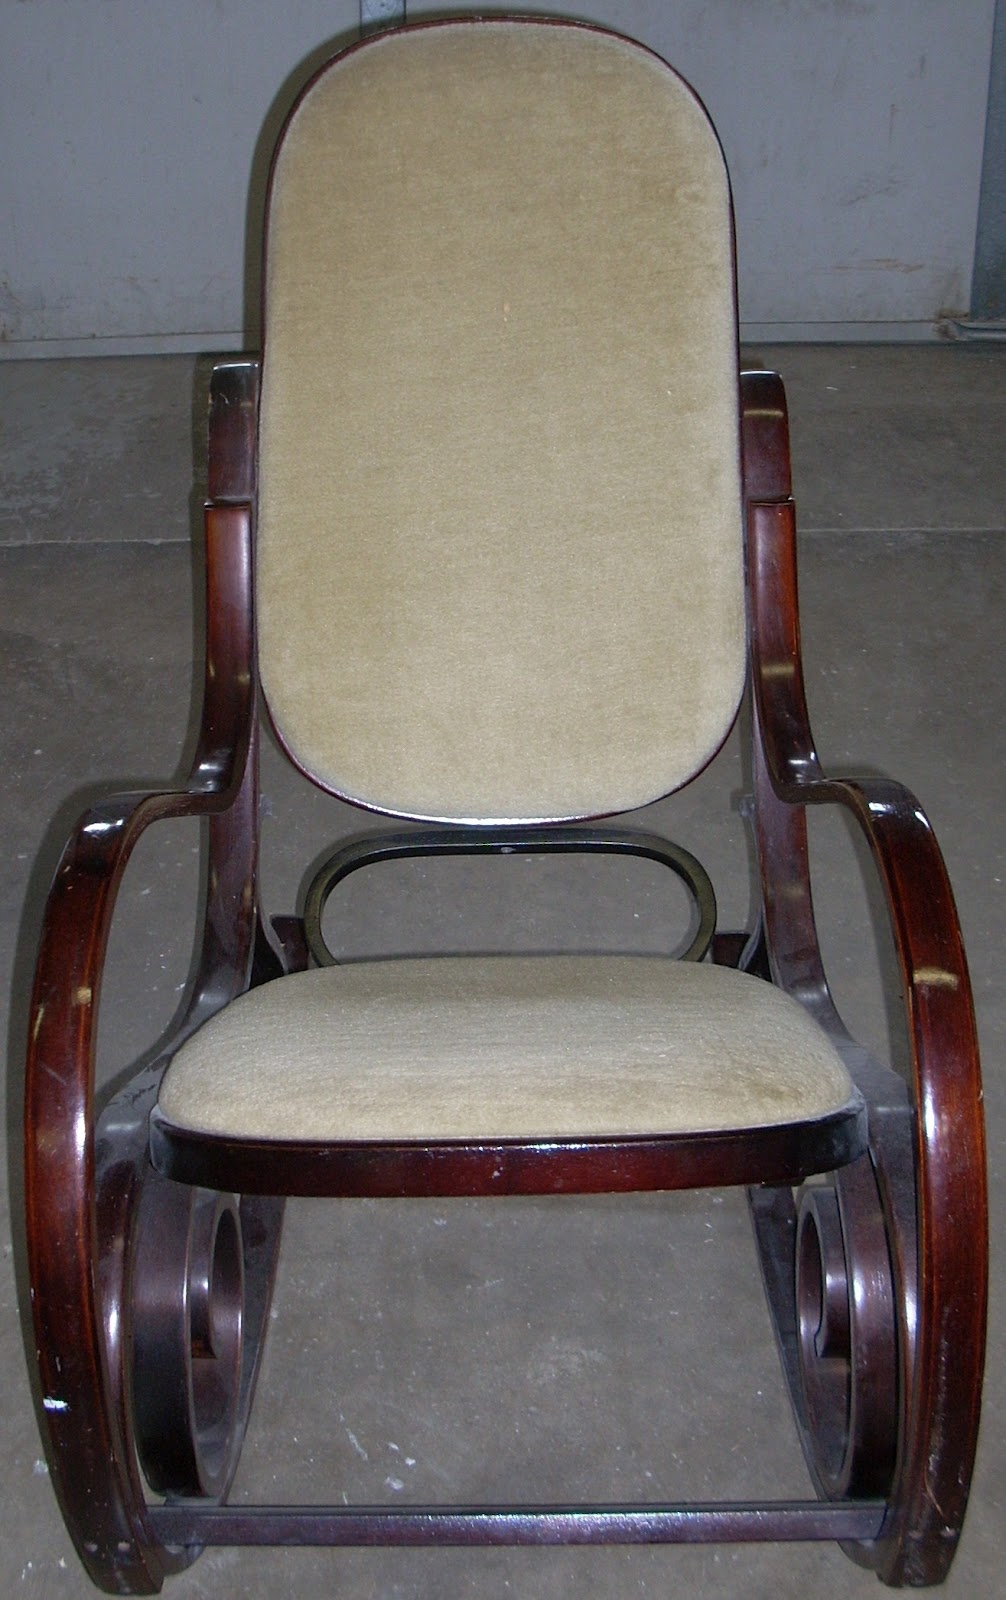 Restore news thonet reproduction rocking chair to be for Thonet replica chair